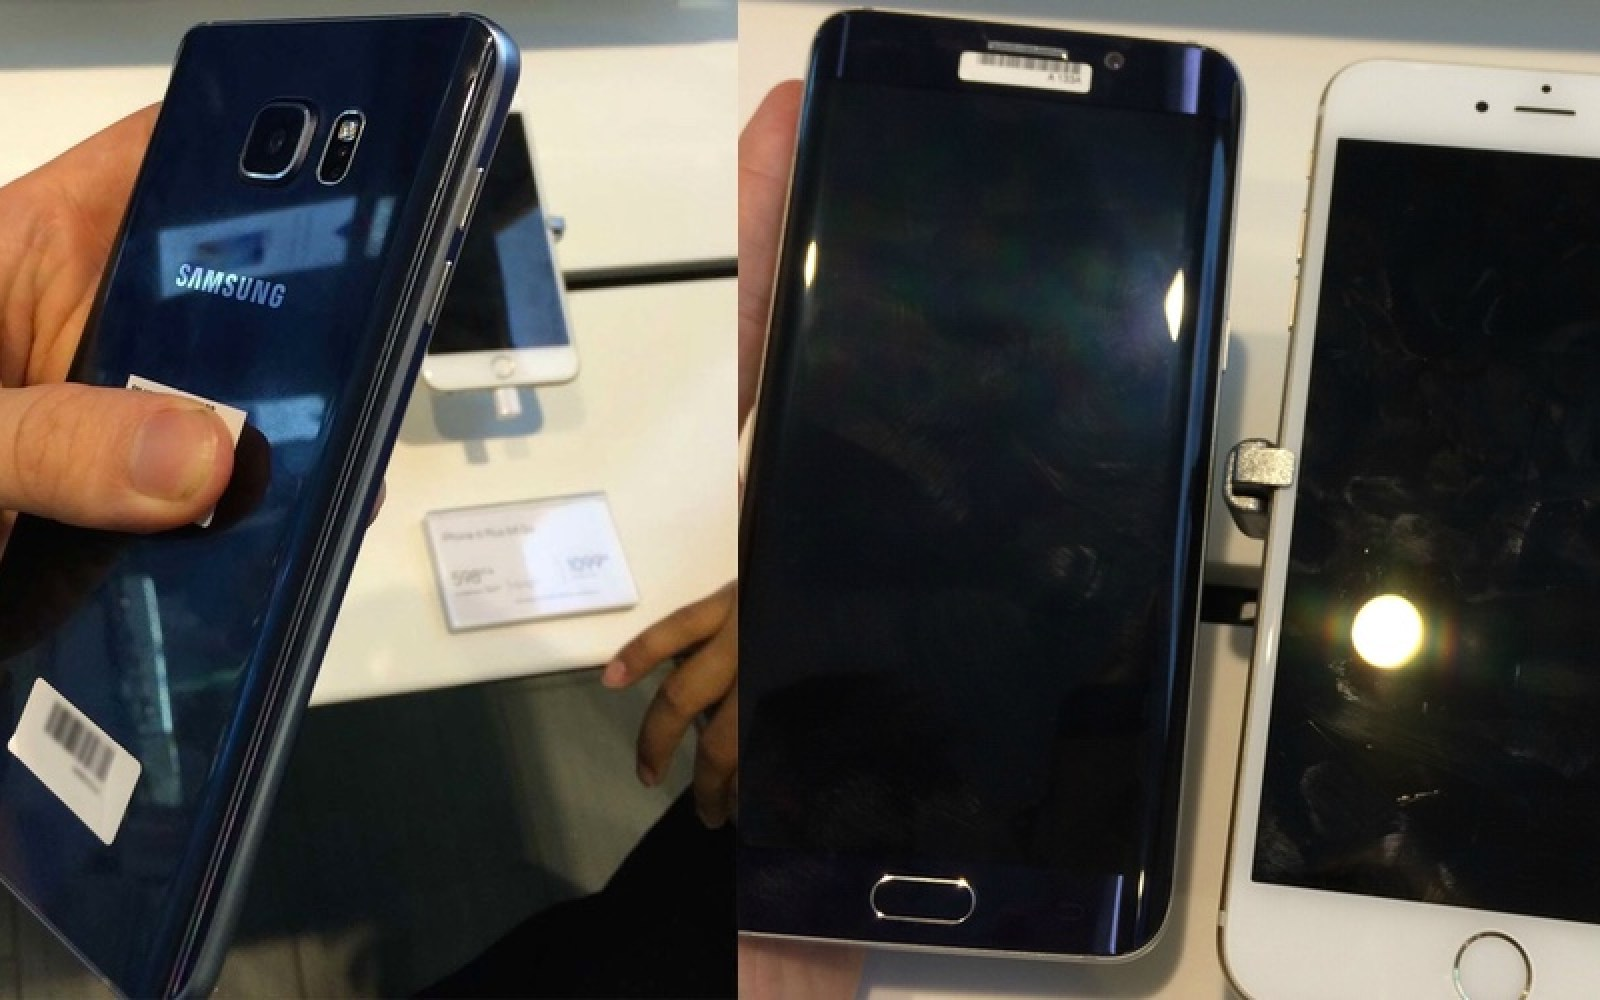 Galaxy Note 5 leaked in clearest images yet, complete with retail packaging